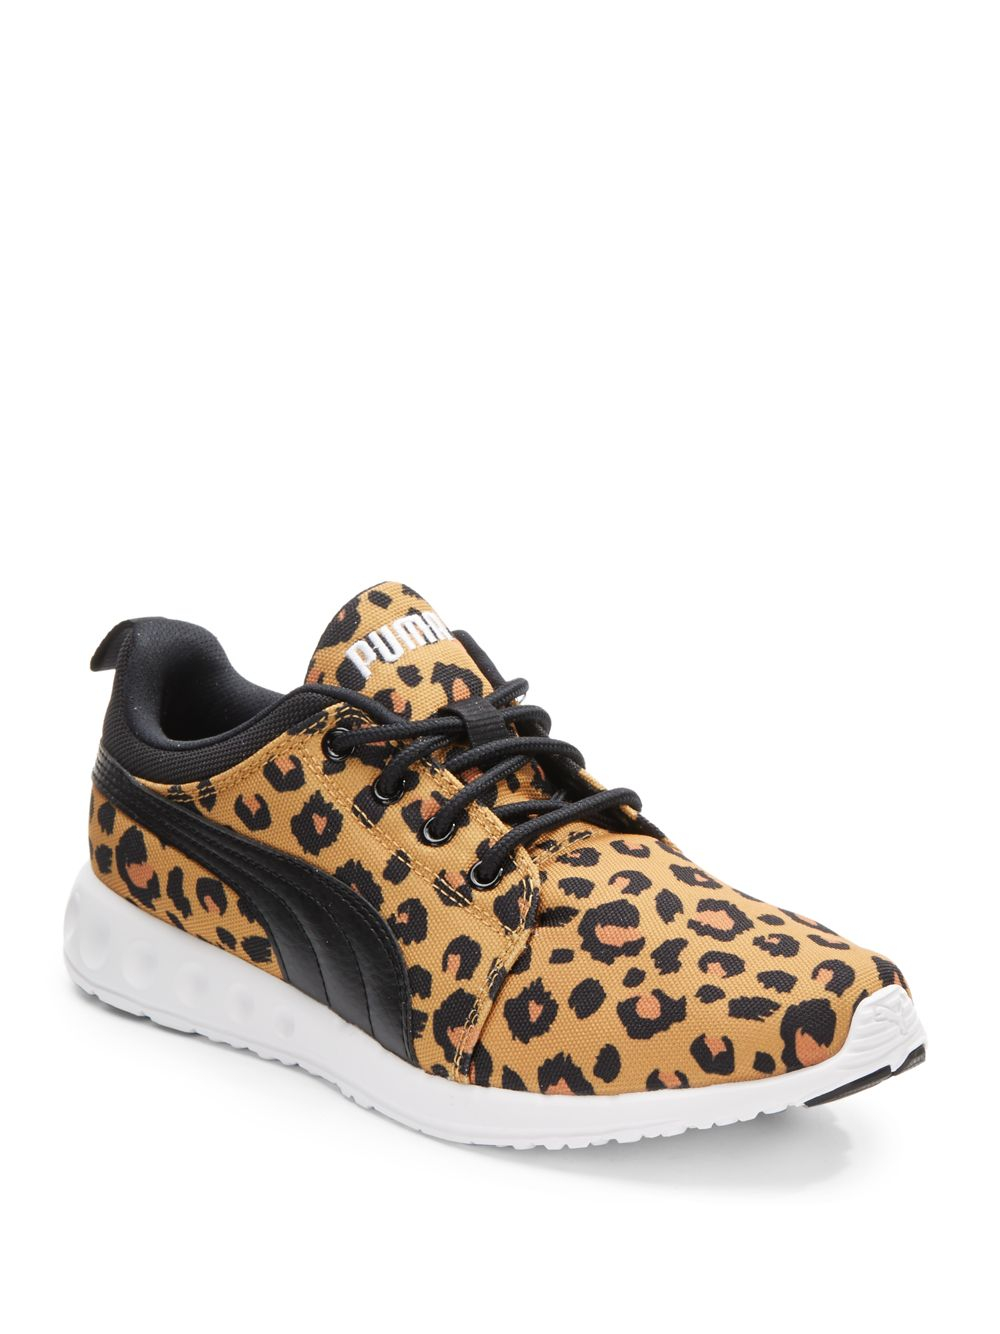 puma carson runner leopard print canvas sneakers lyst. Black Bedroom Furniture Sets. Home Design Ideas